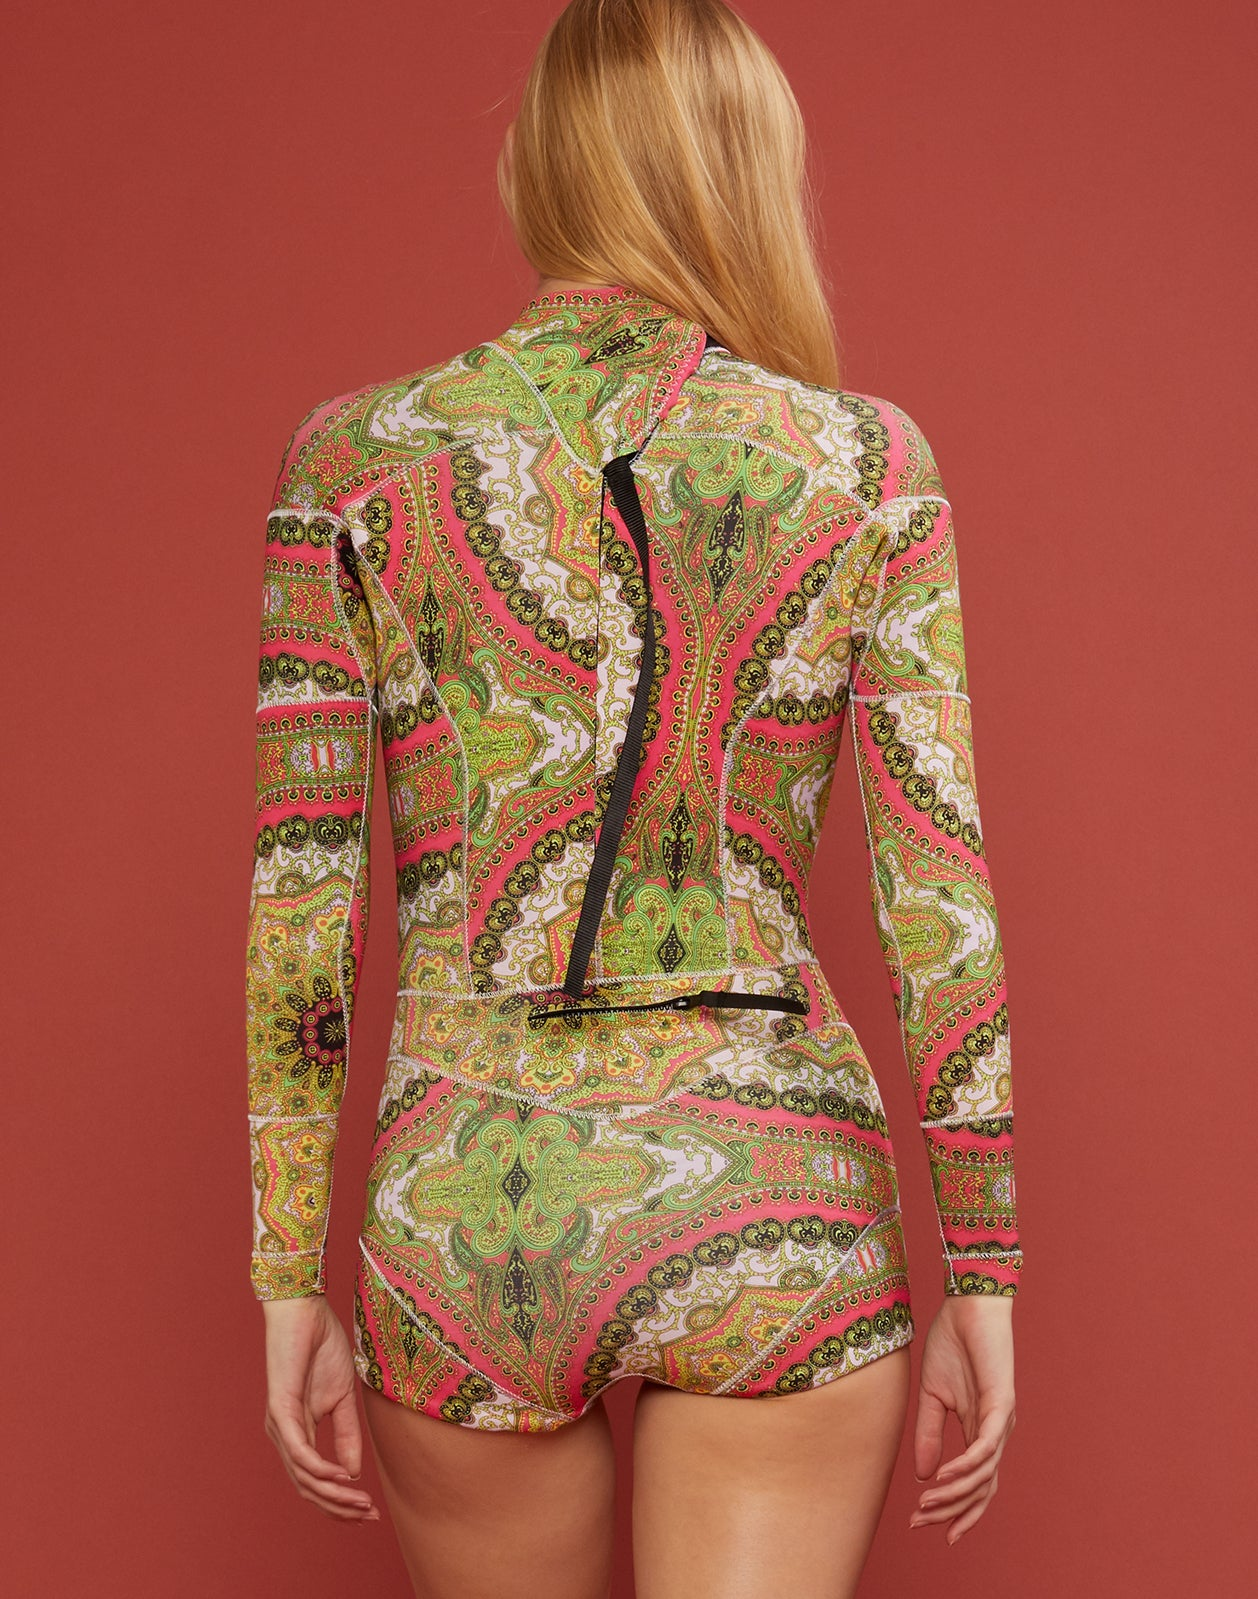 Back view of pink paisley neoprene wetsuit in pink paisley print.